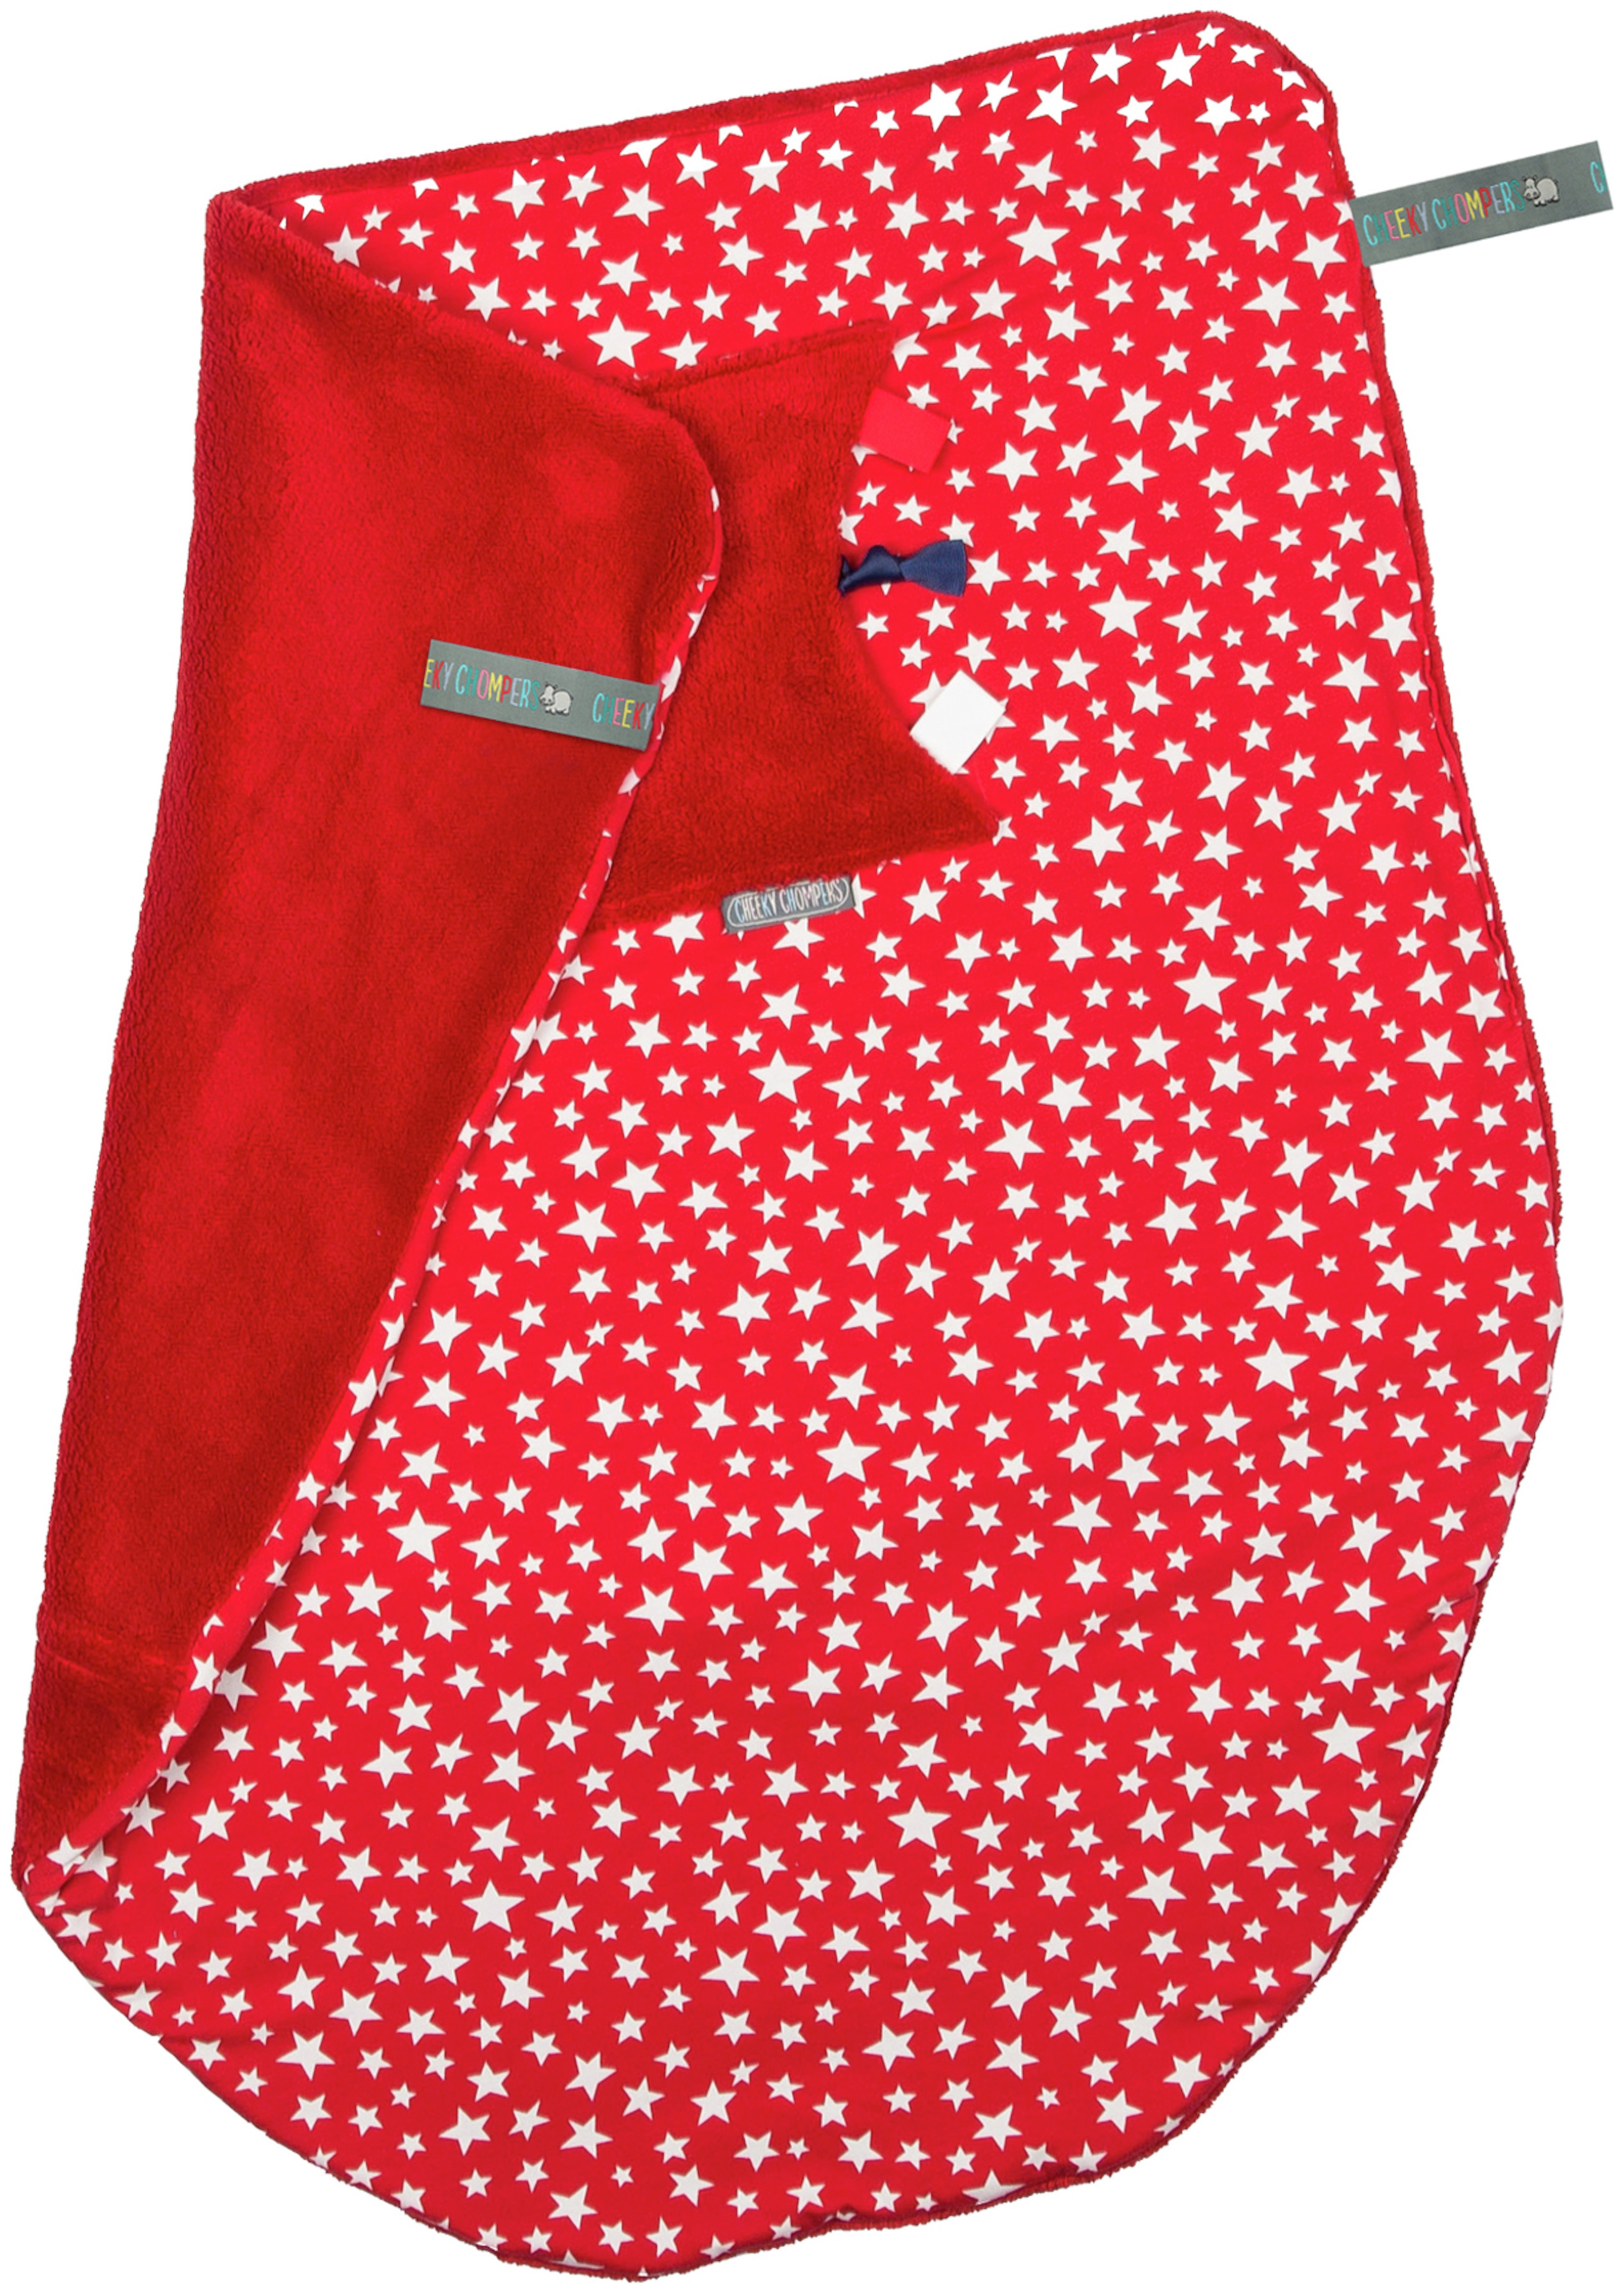 Image of Cheeky Blanket - Red Stars